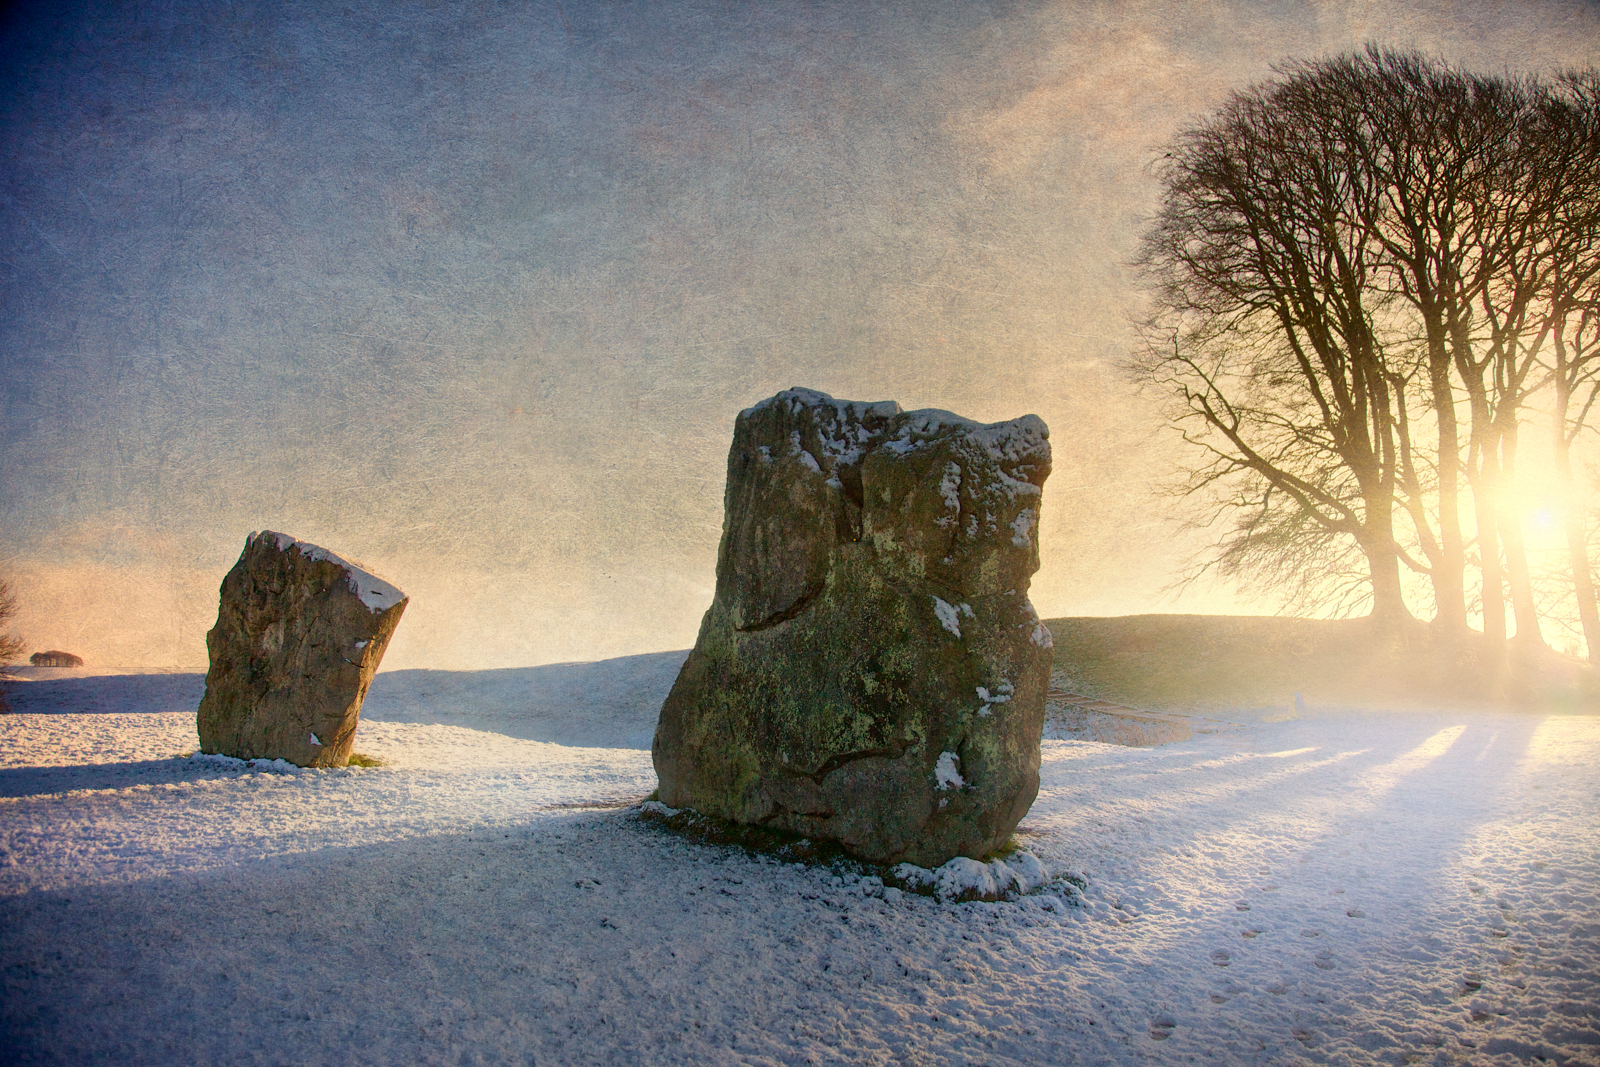 If it's January it must be time to visit Avebury … so why am I still here in the midwest?